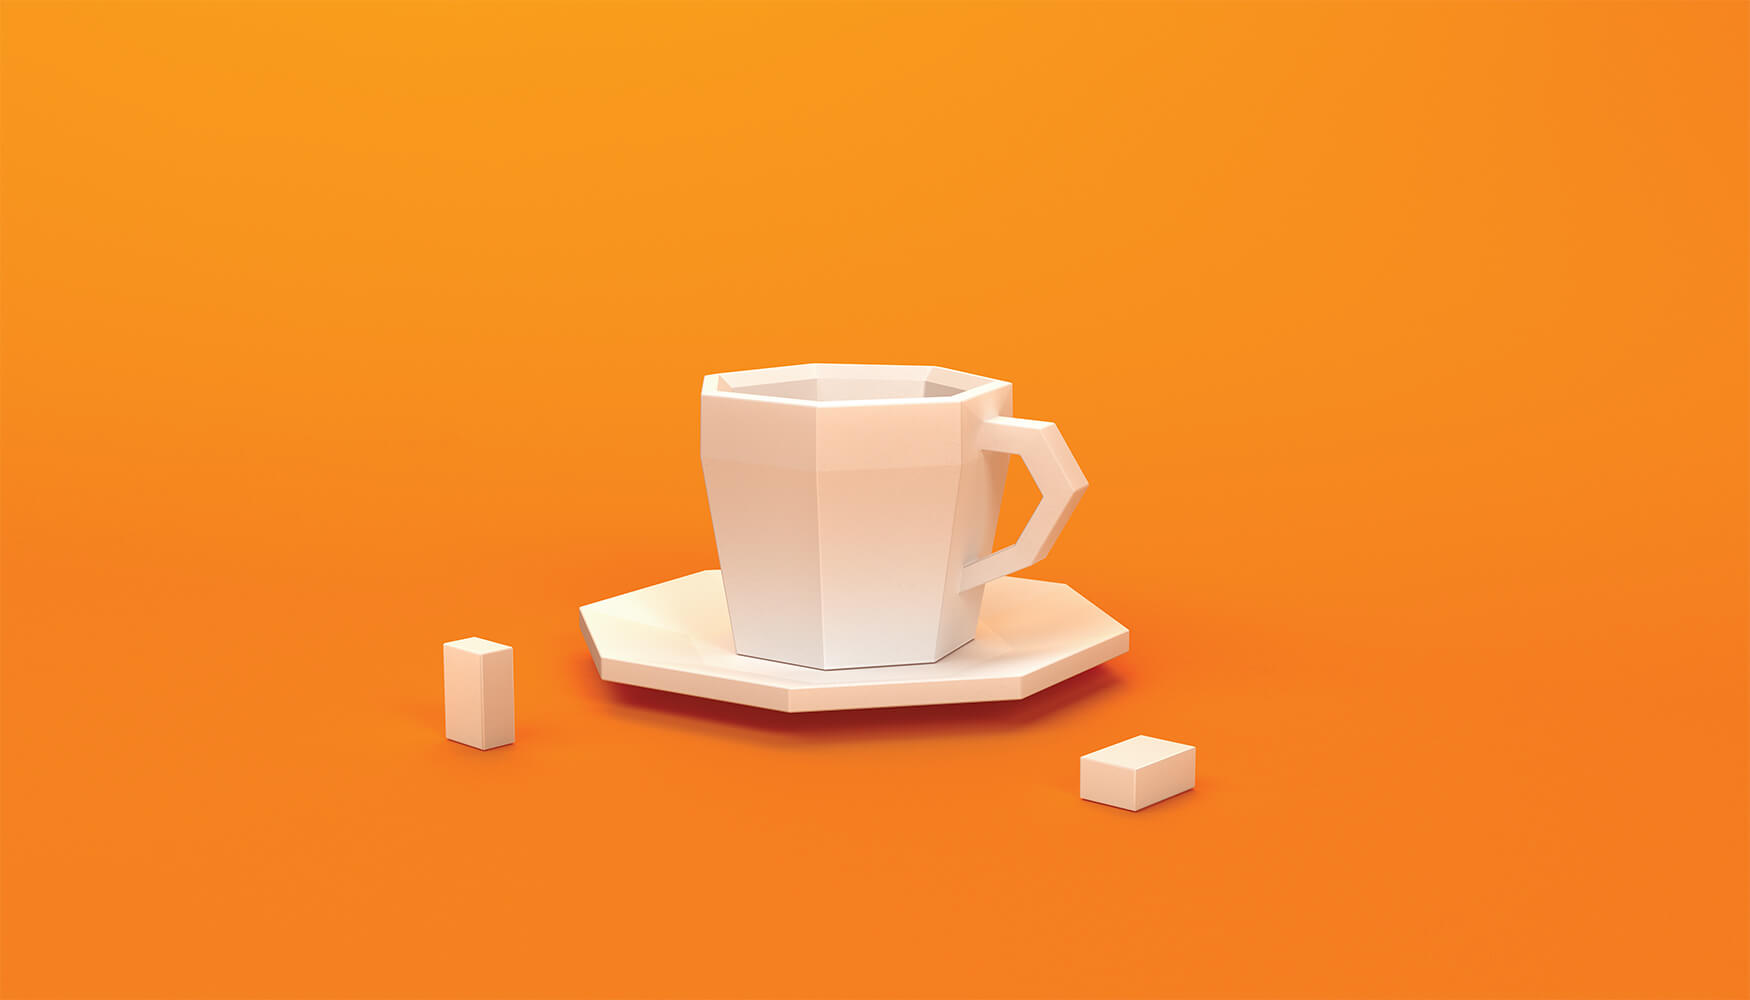 3D Cup low poly model